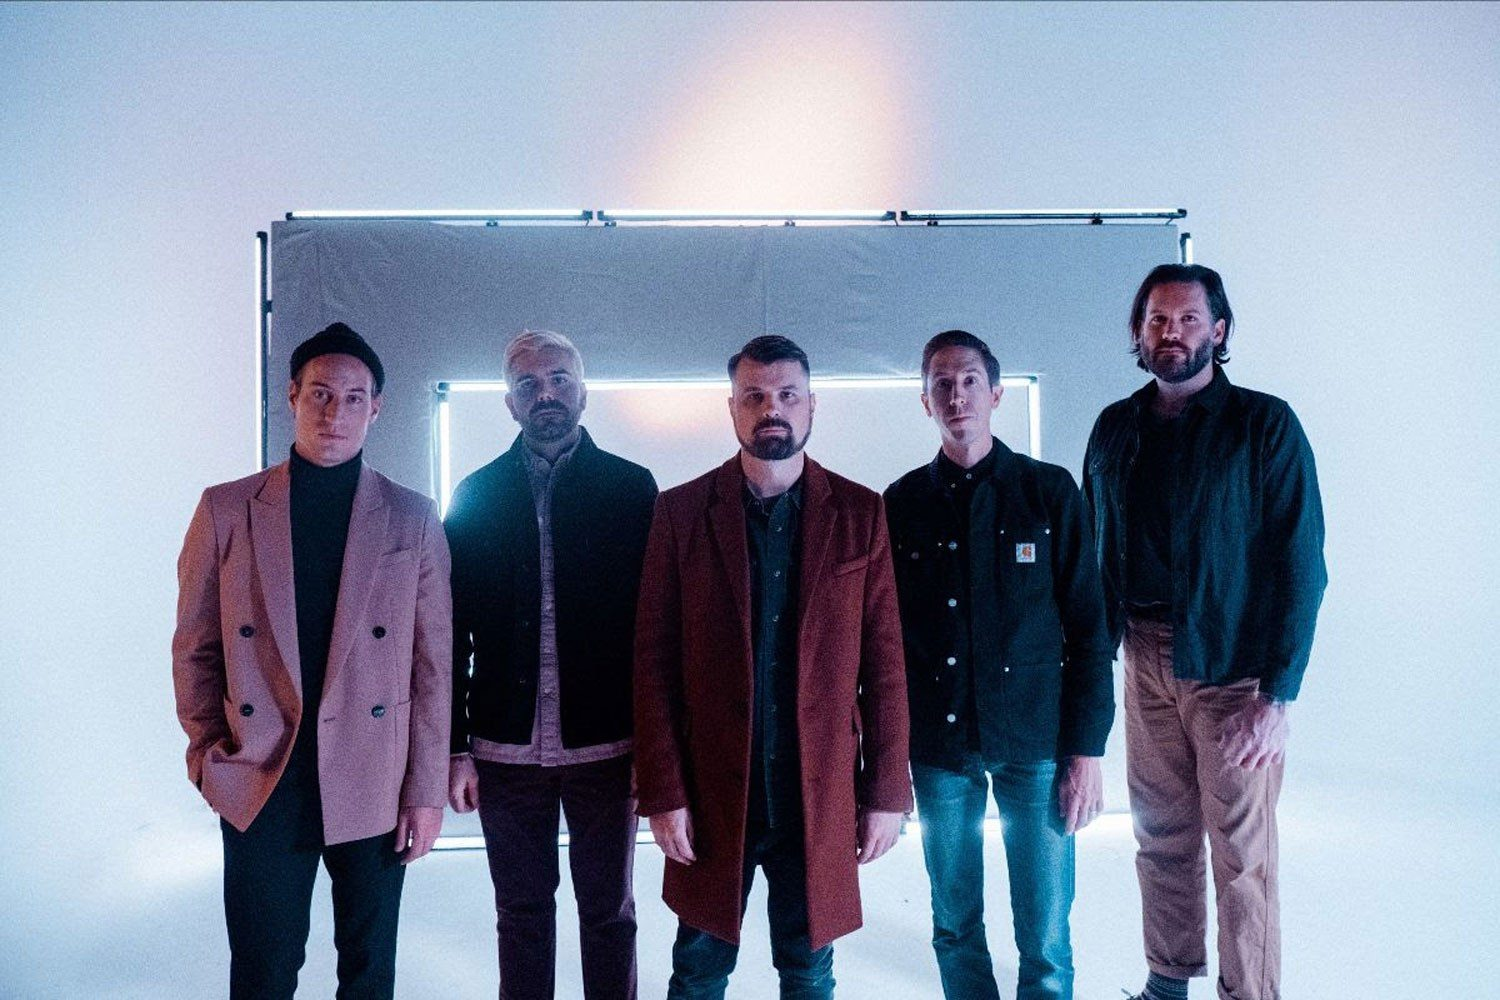 Silverstein have shared their new track, 'Bad Habits (Feat. Intervals)'